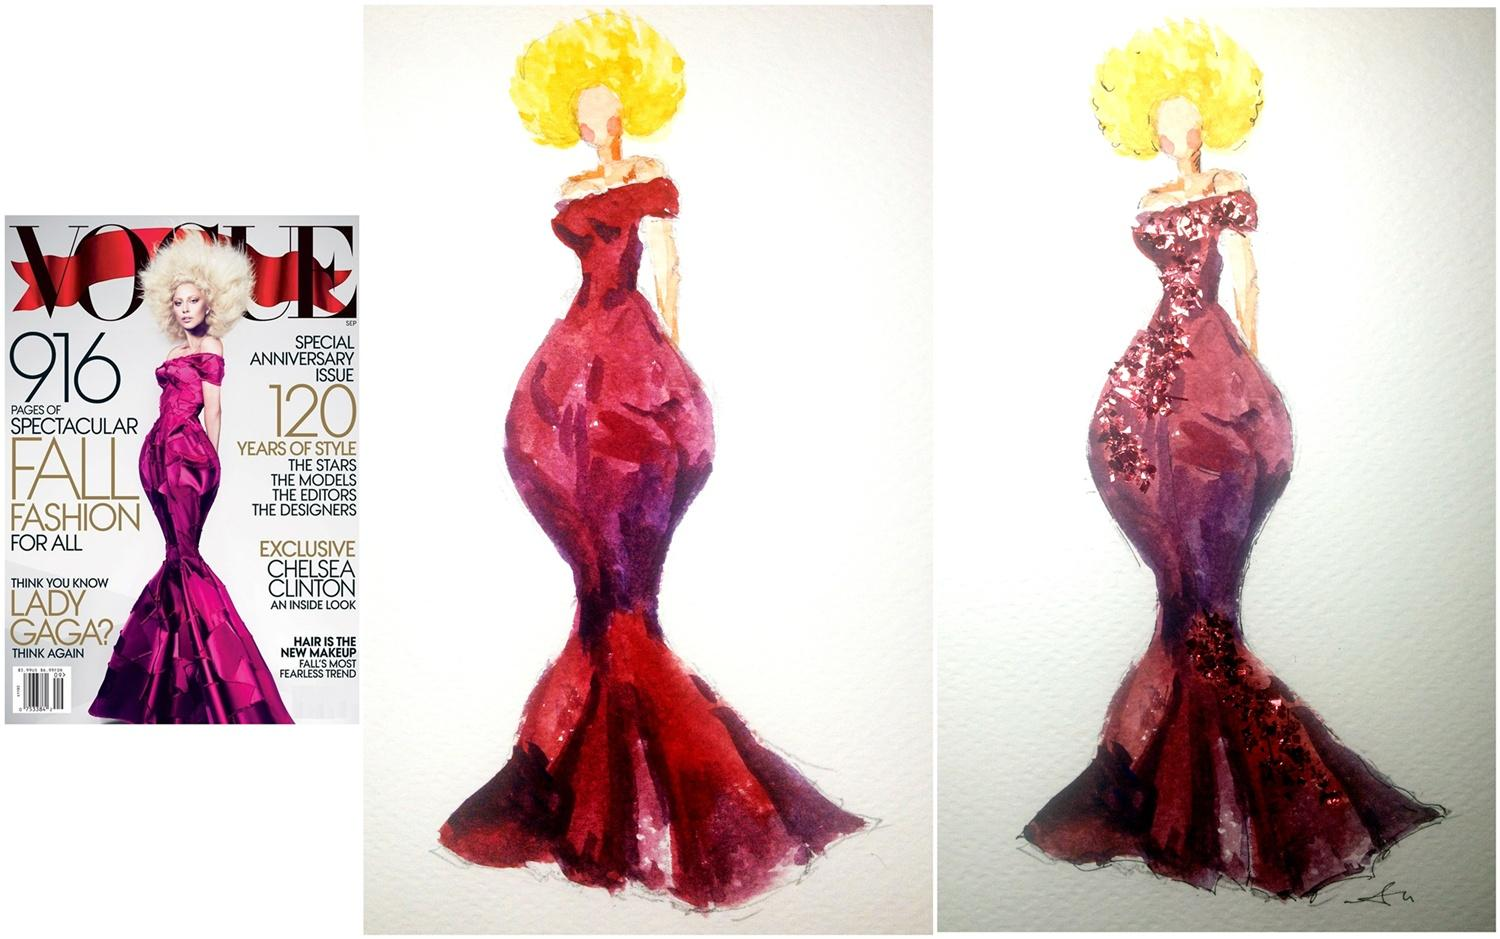 //New works!!// Texture. Color. Glamorous. - image 2 - student project